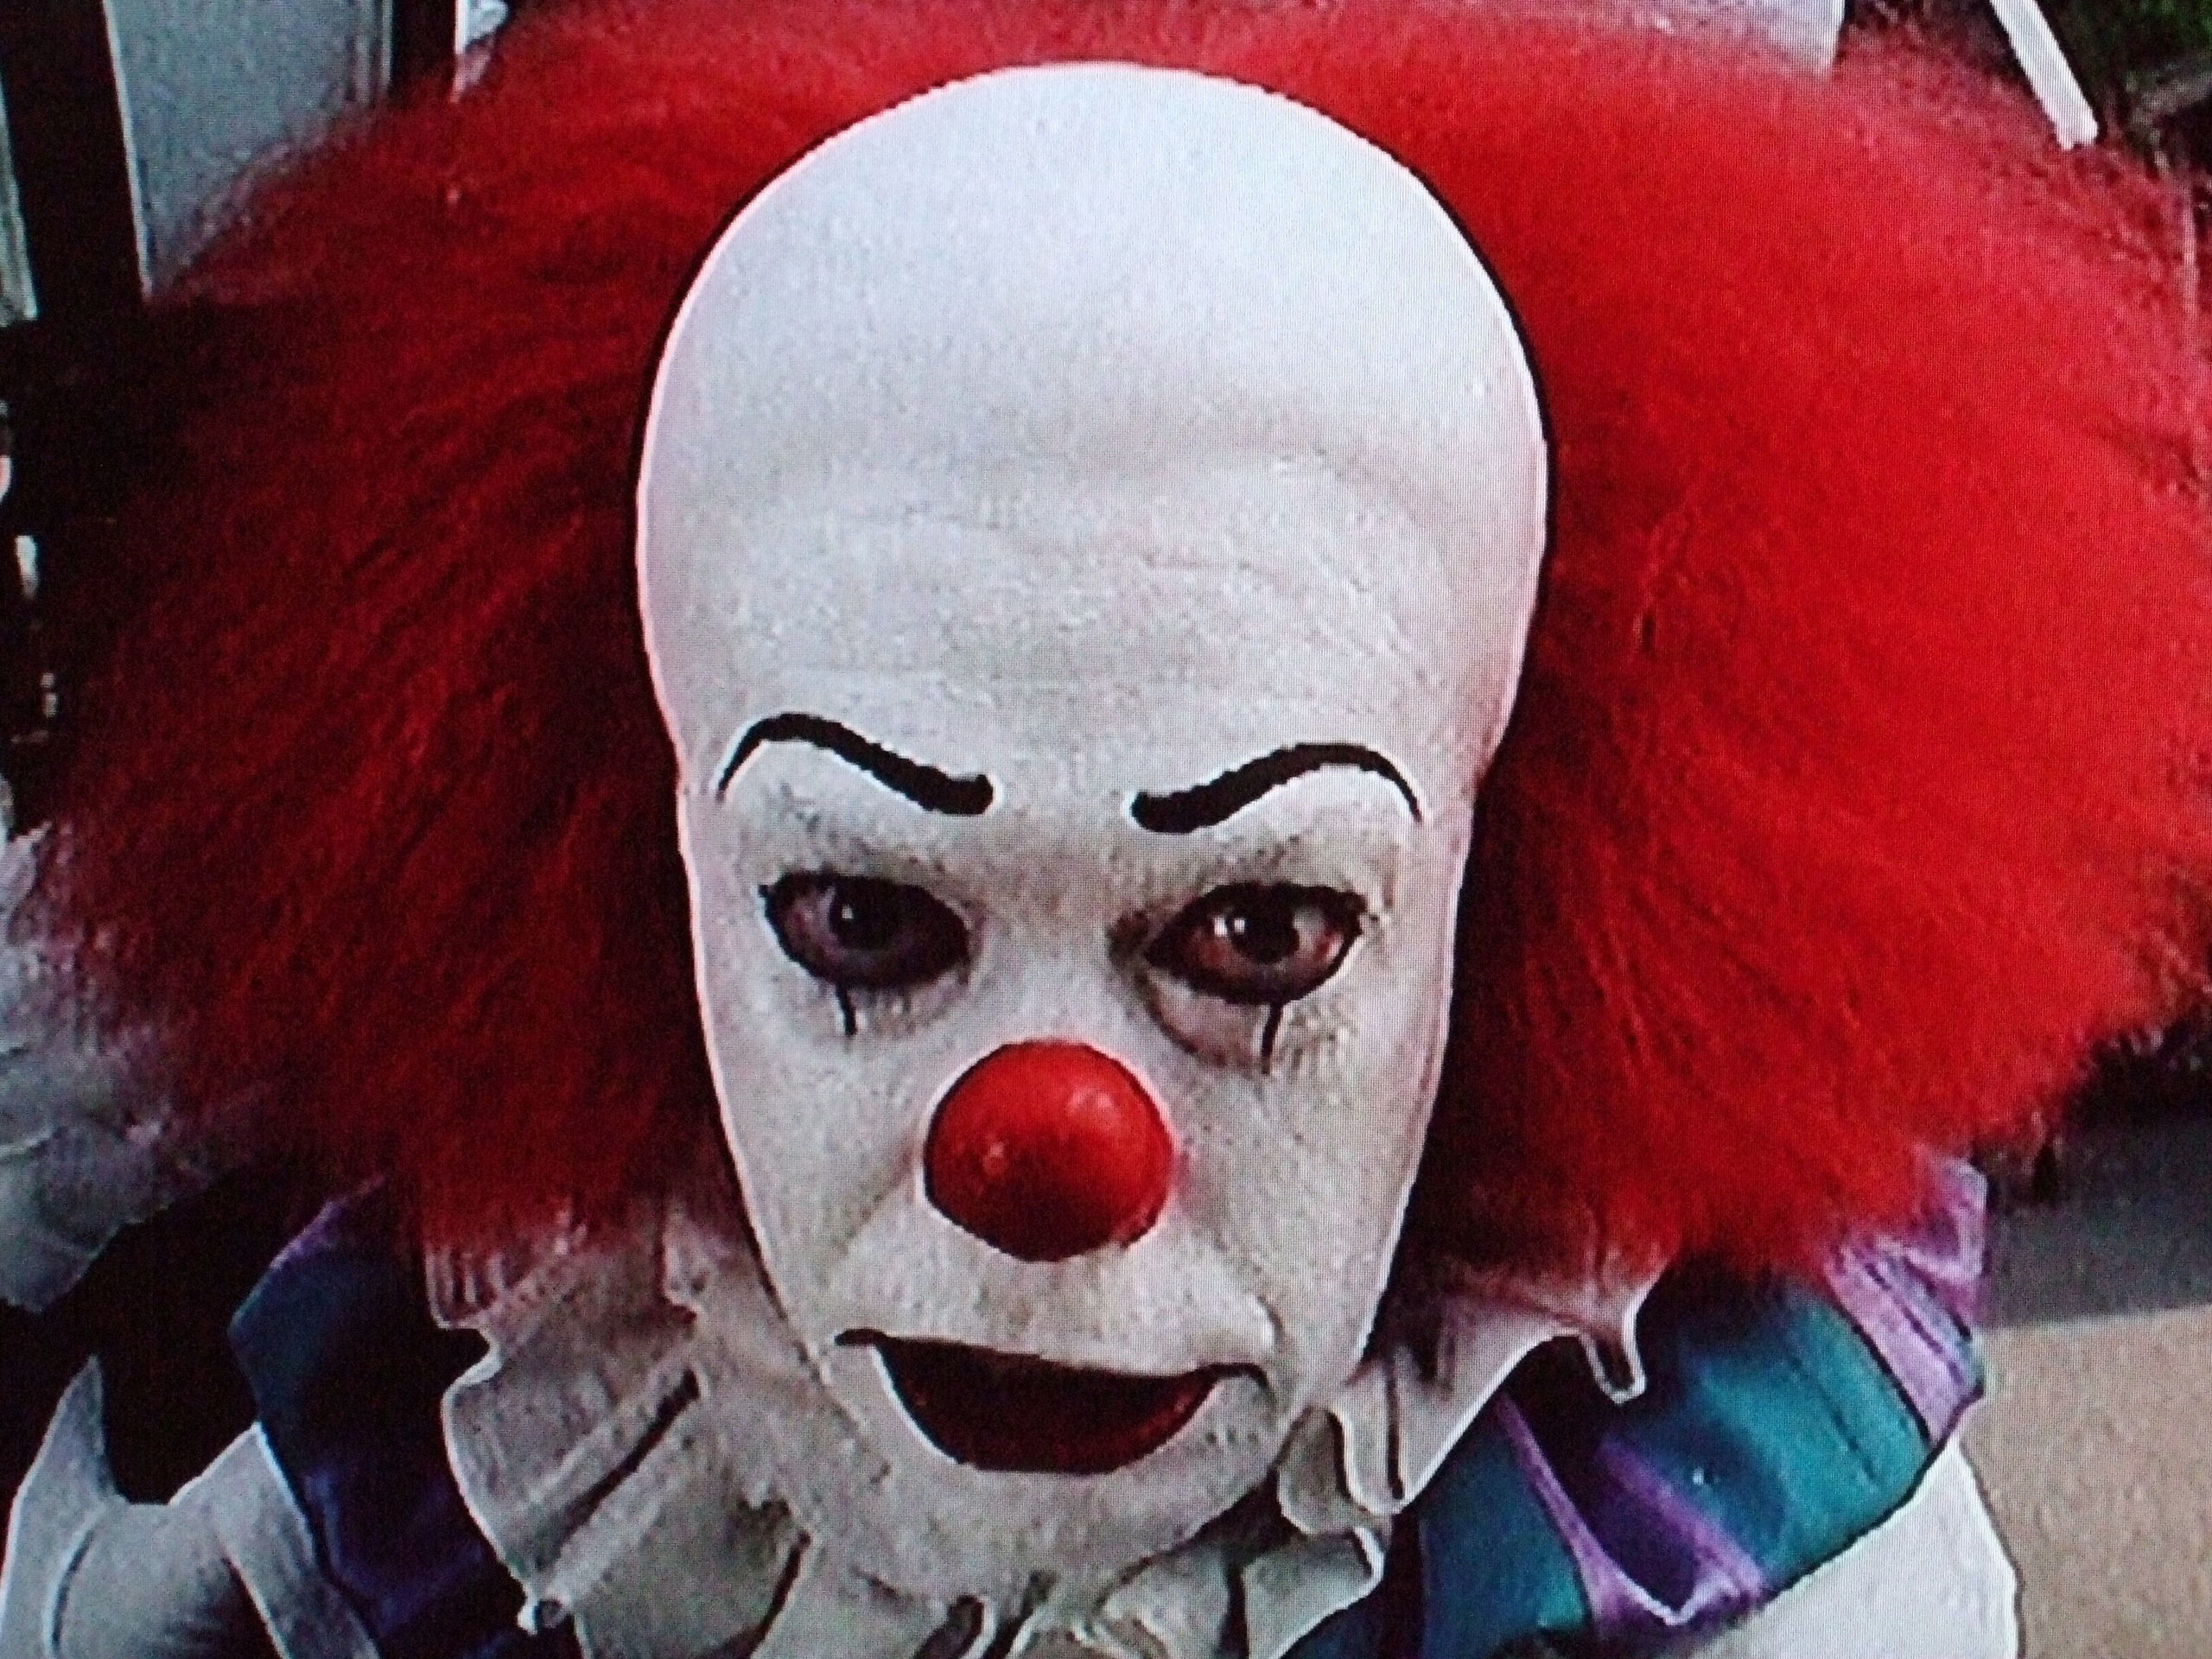 2560x1920 Pennywise The Clown Has Been Cast In Stephen King's It ..